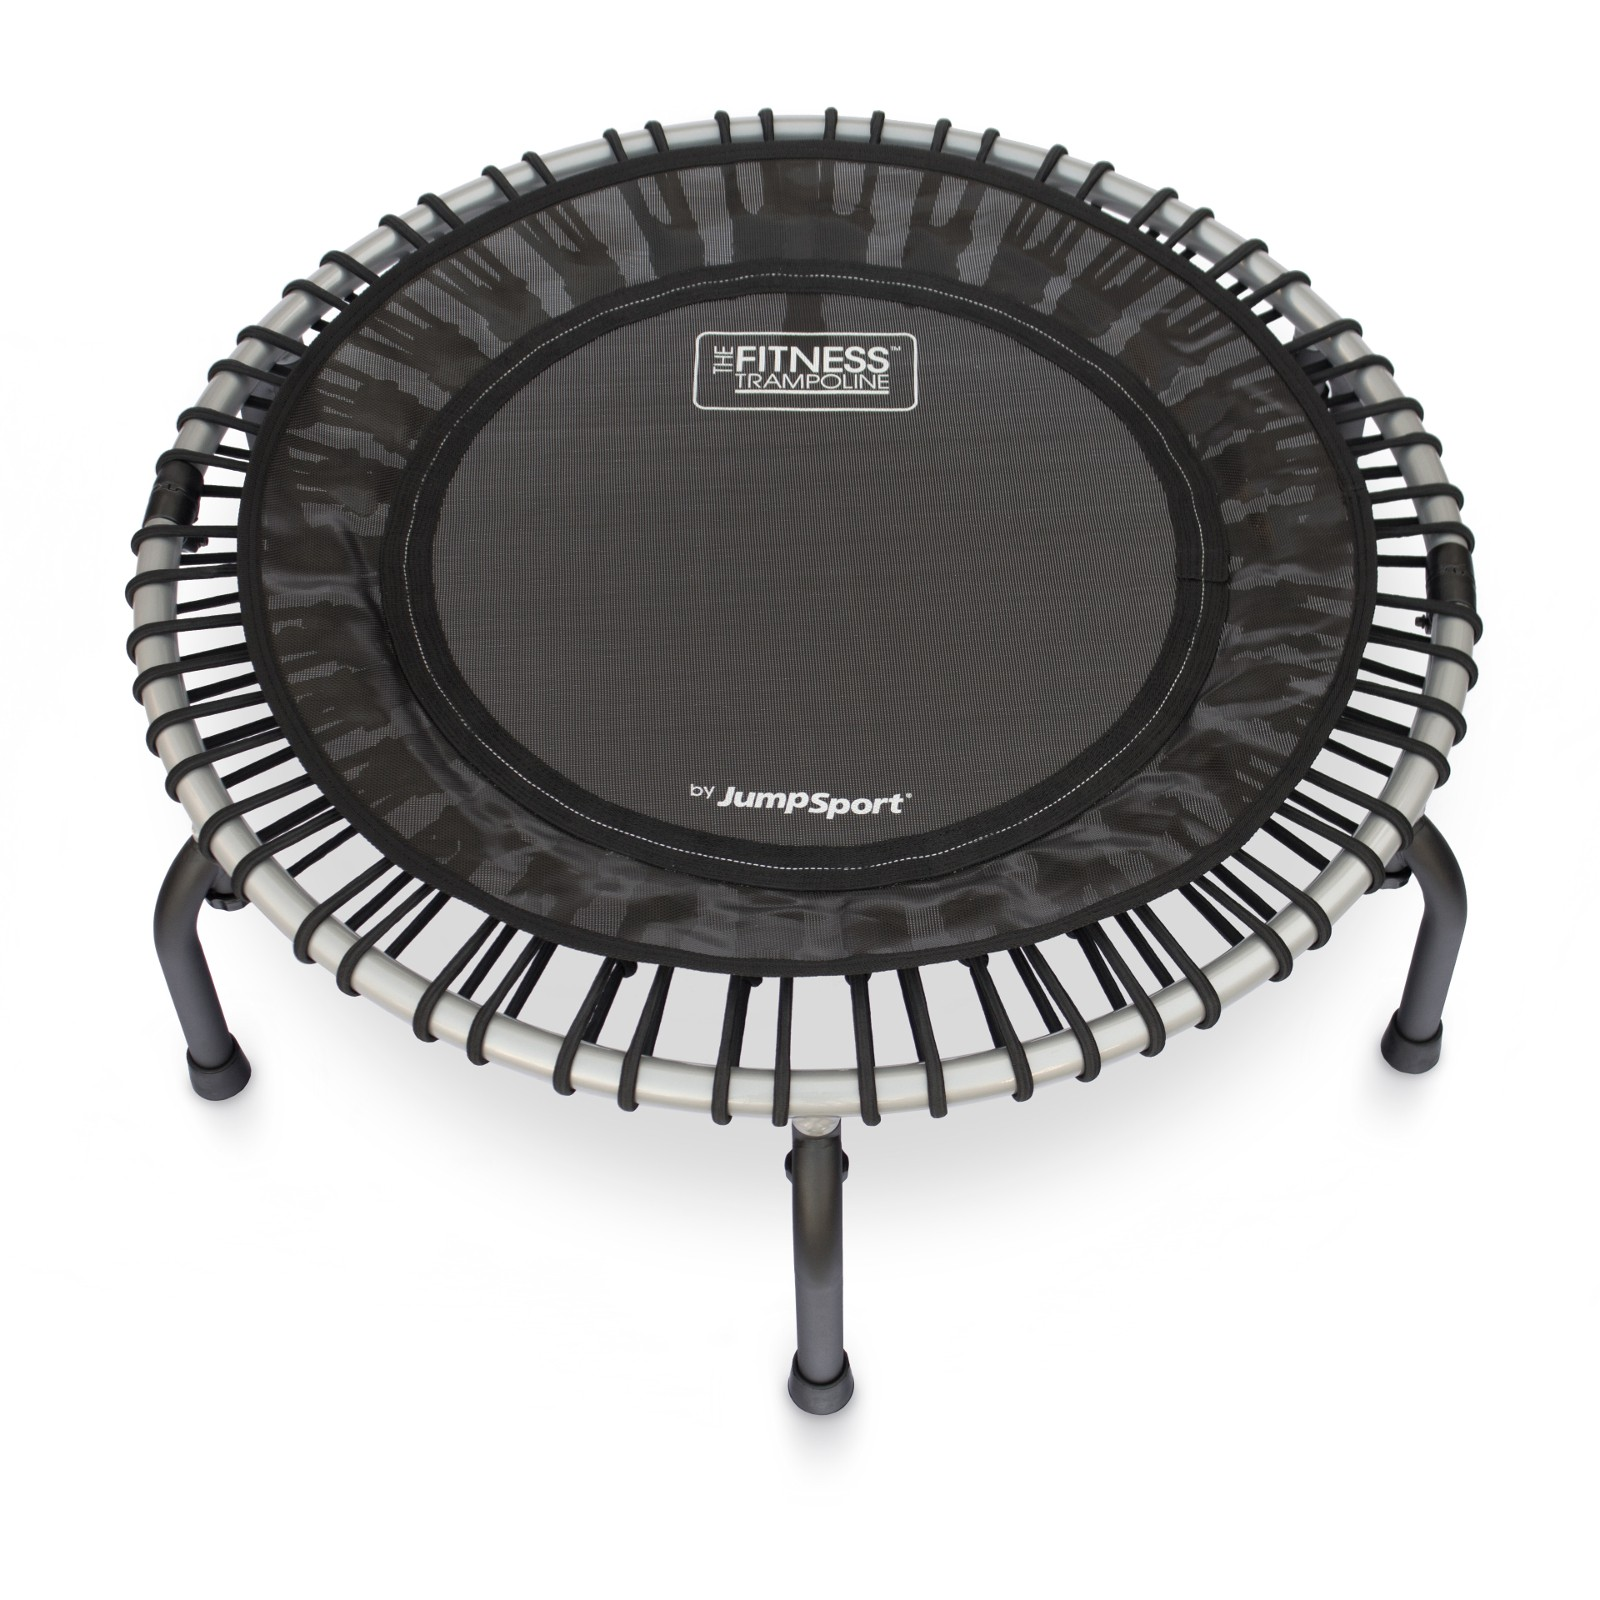 Jumpsport Fitness Trampoline Model 350 Best Buy At